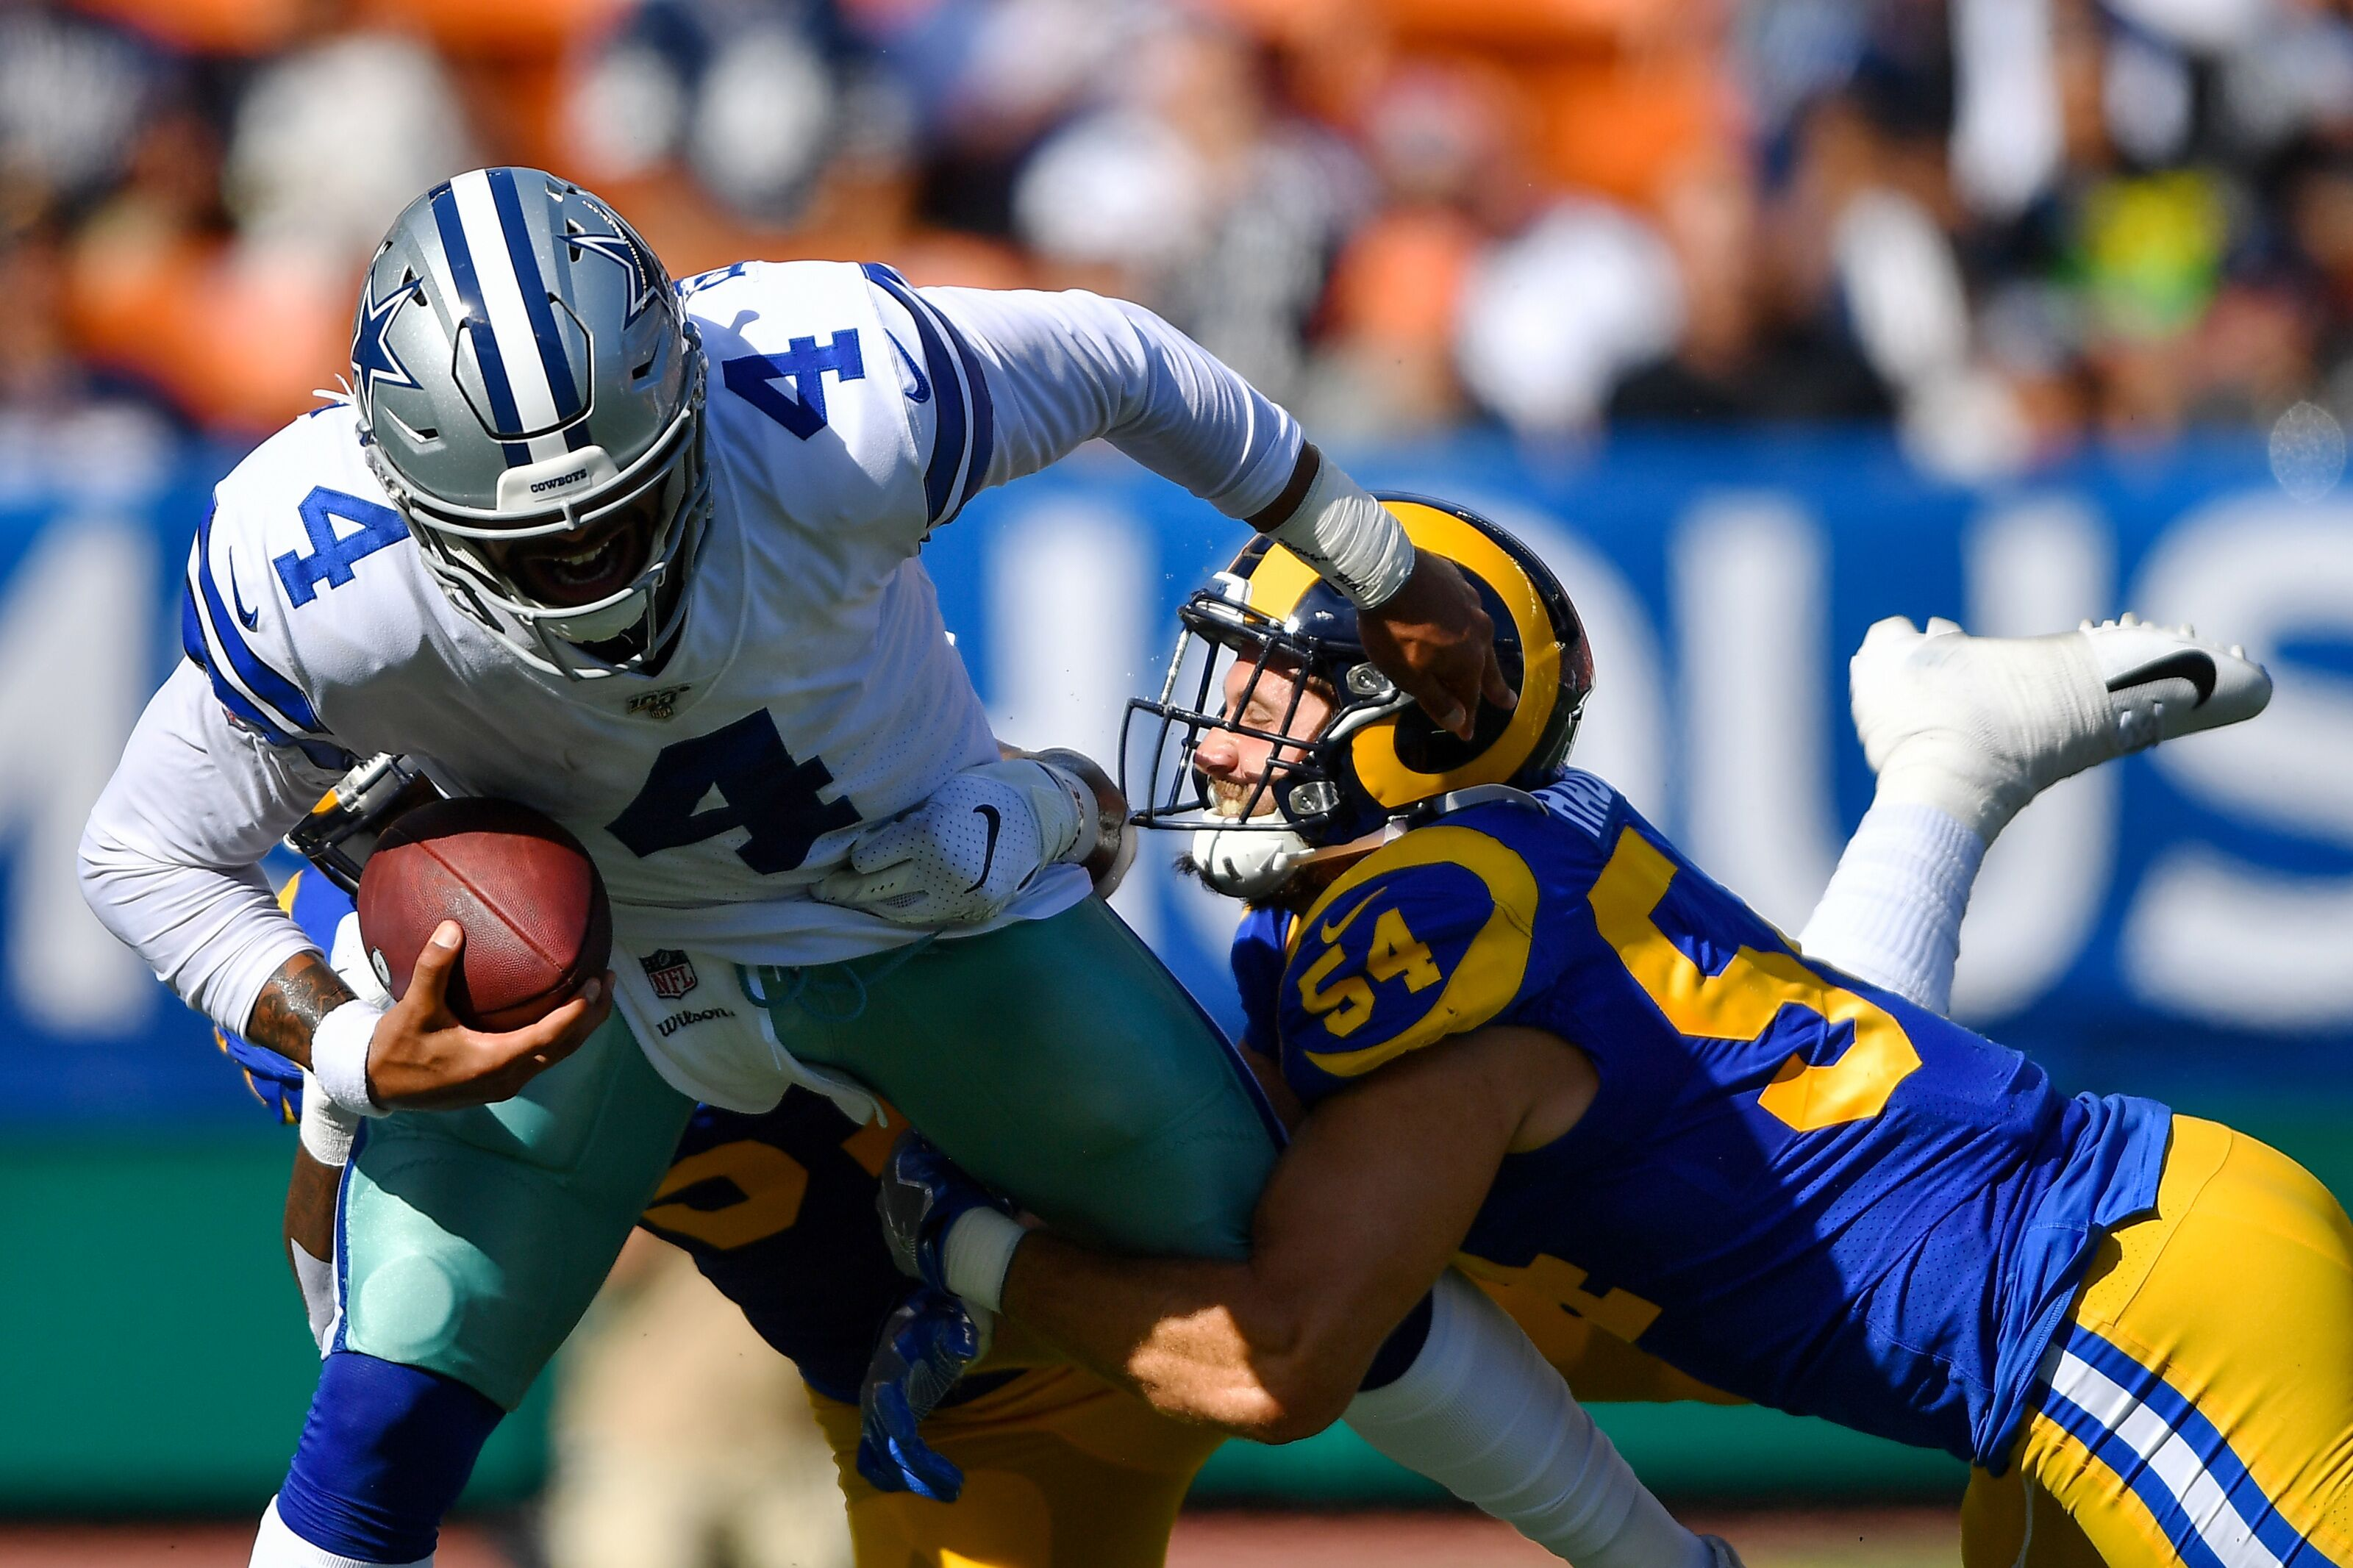 Important takeaways from the Dallas Cowboys 2nd preseason game